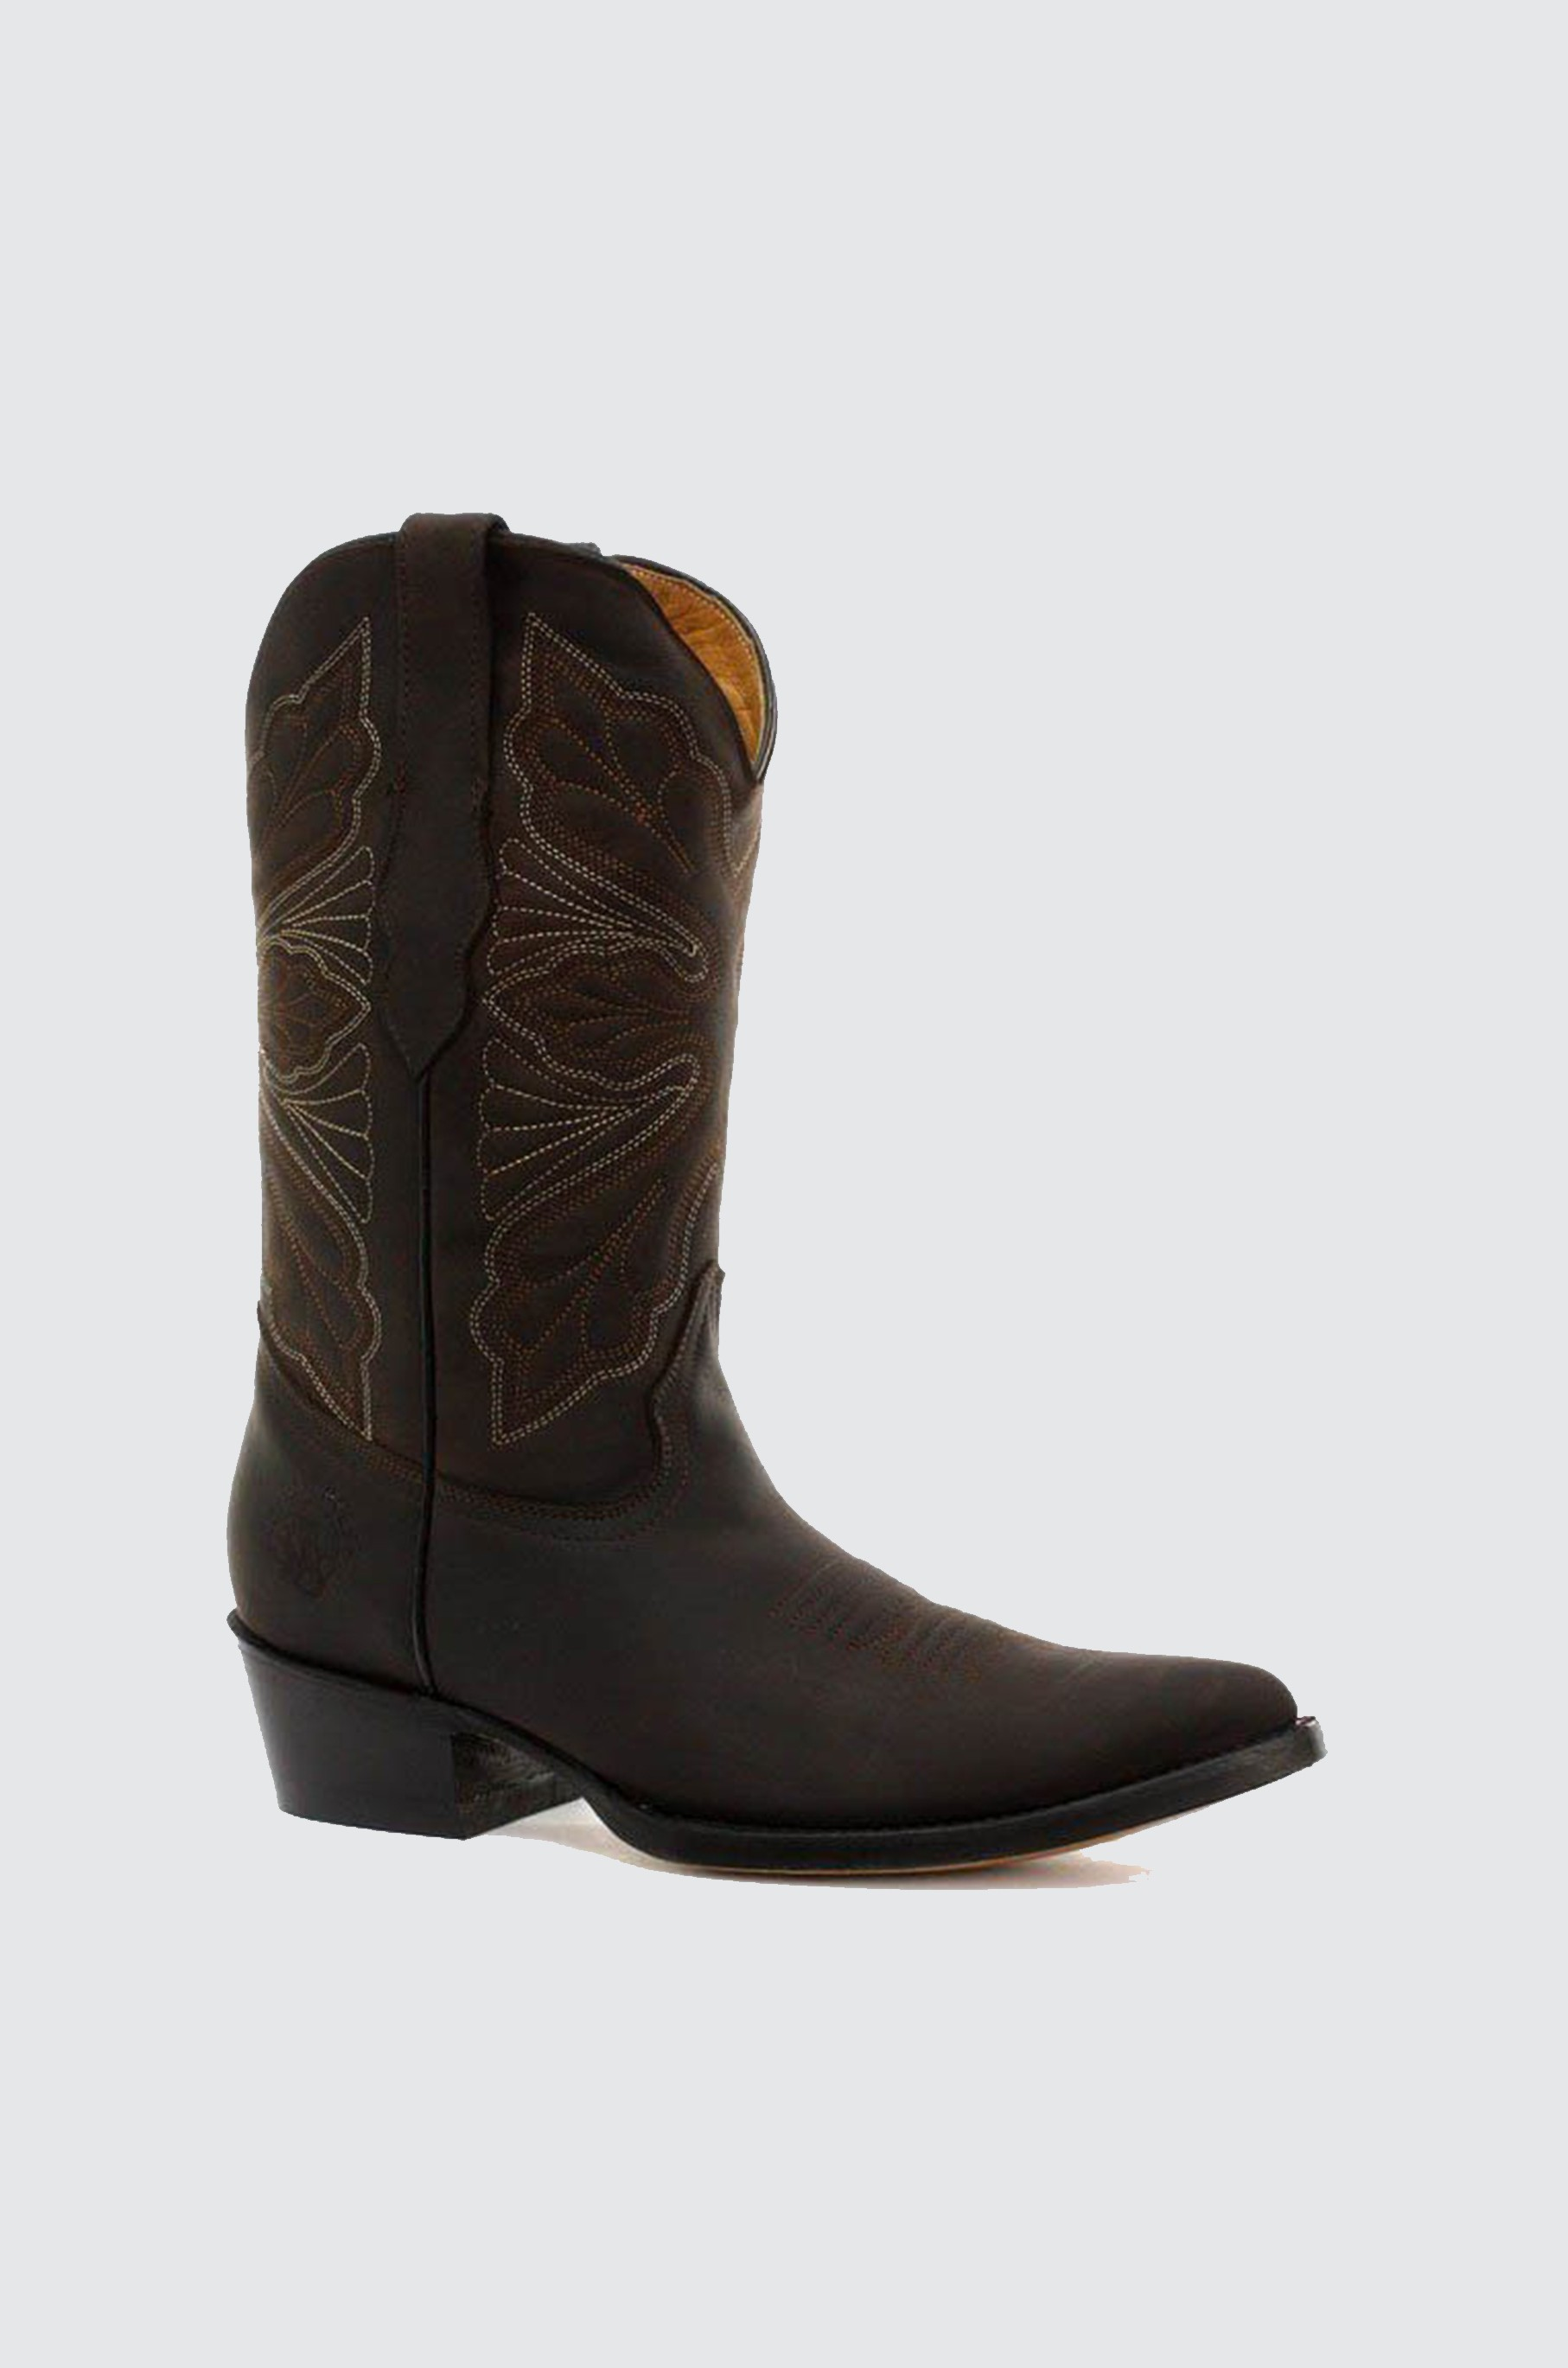 Grinders Womens Dallas Brown Real Leather Boot Cowboy Western ... 77fcf9e9b